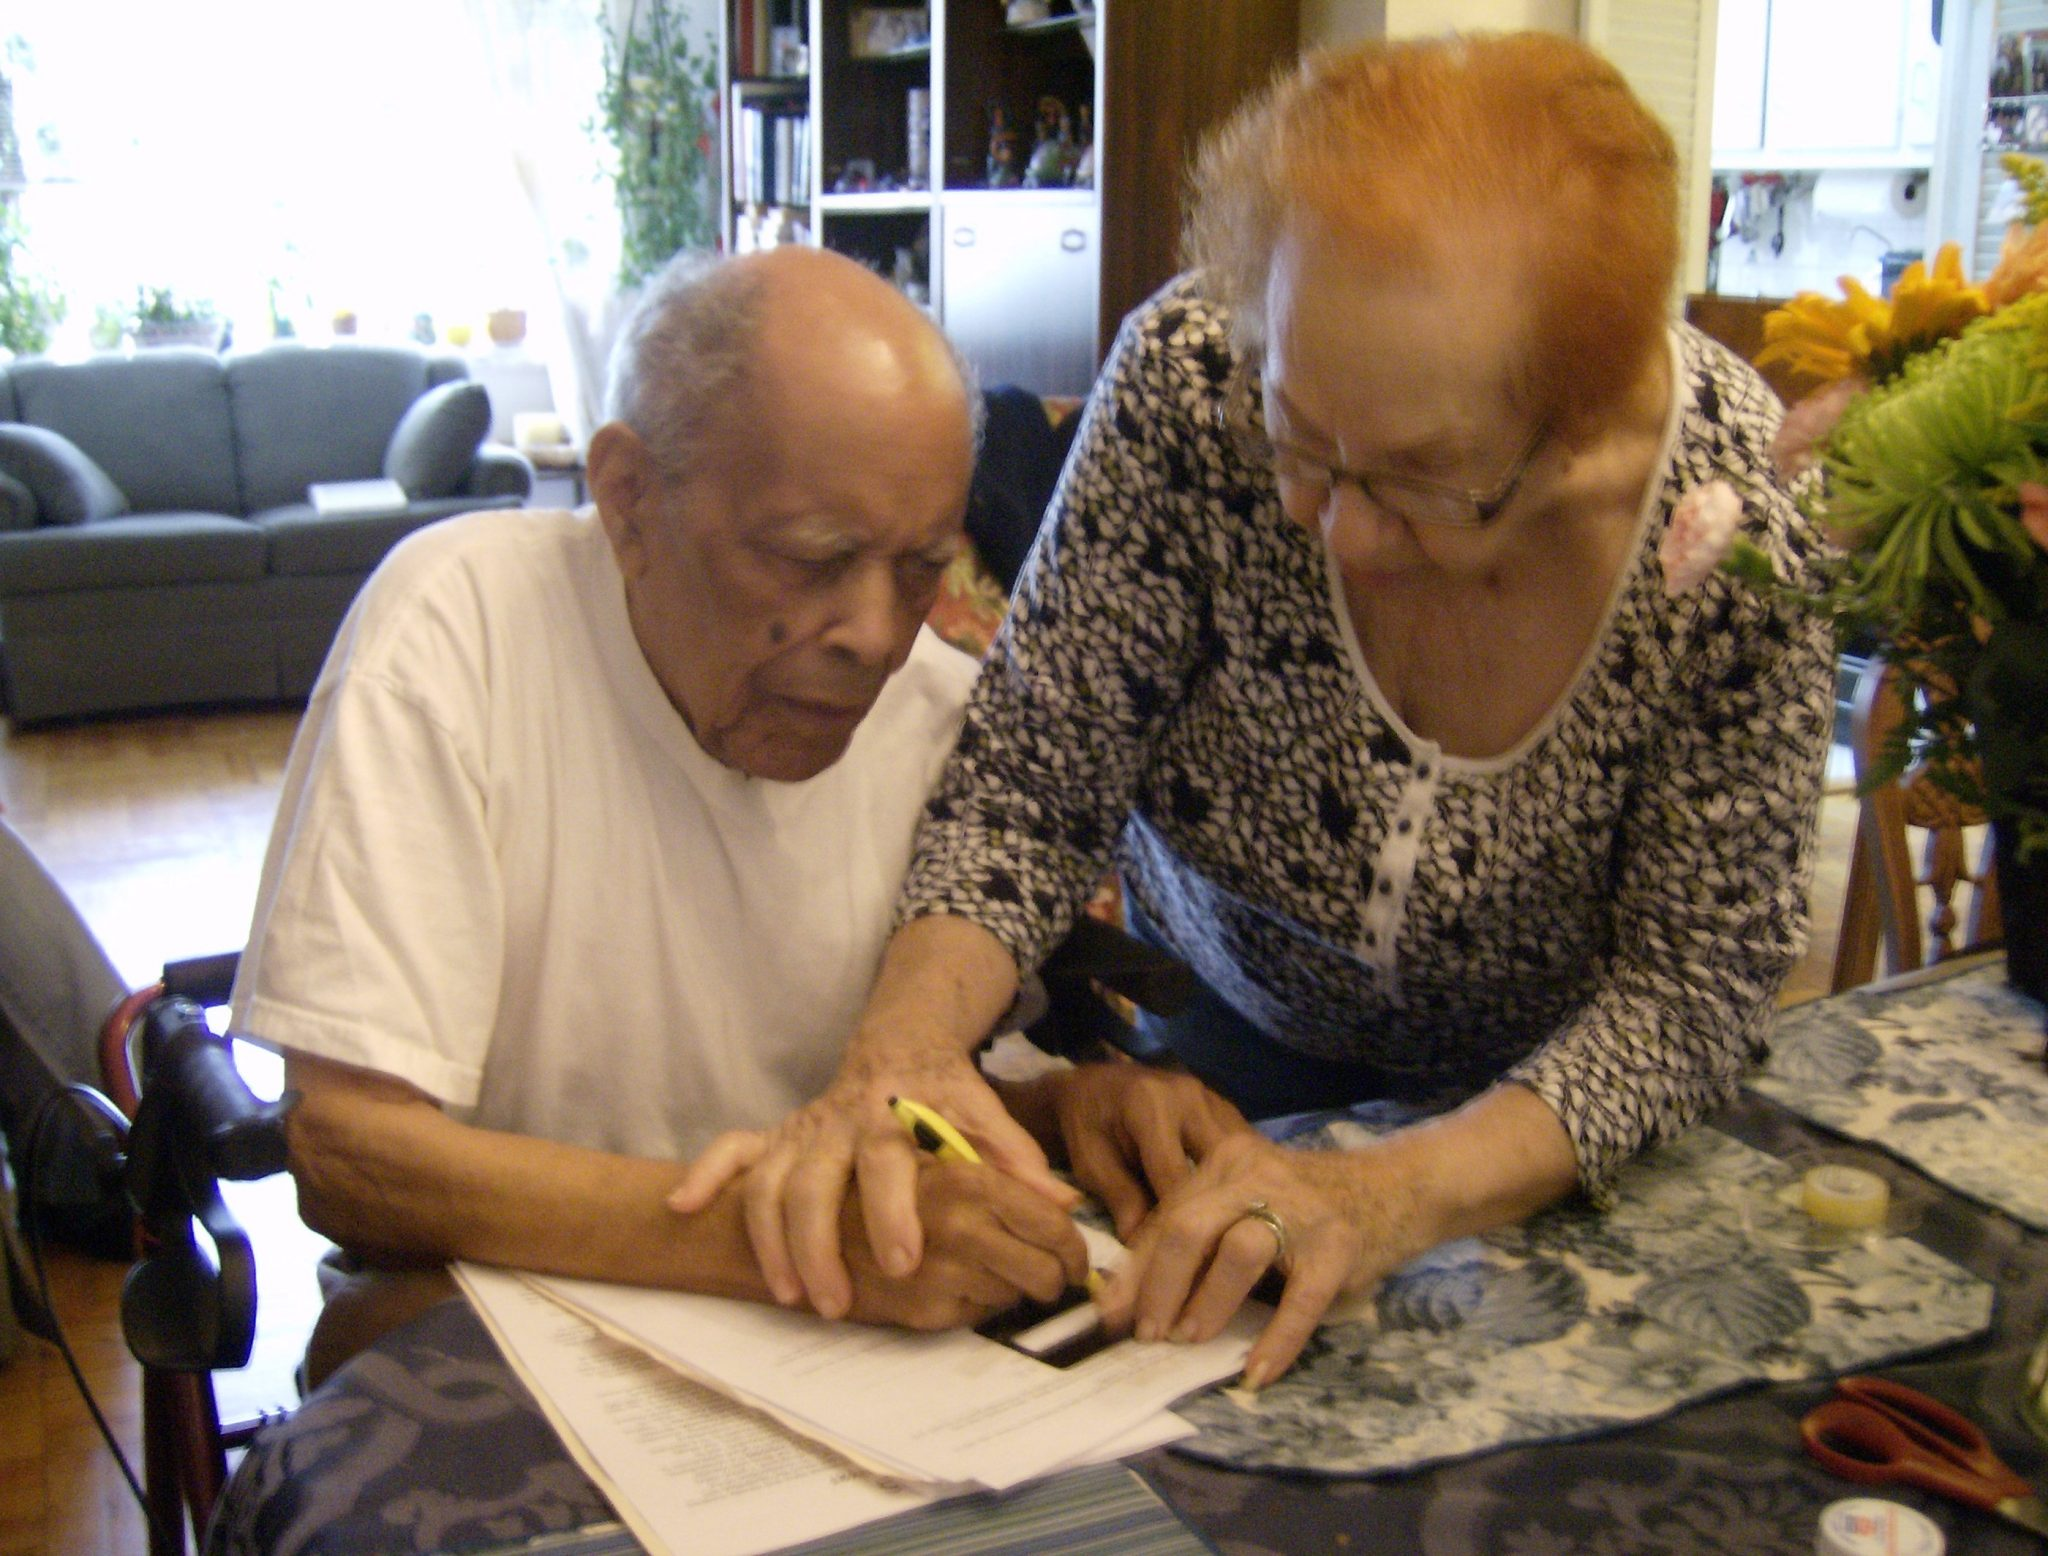 carmen and antonio- caregivers - Elderly woman (wife?) helping elderly man (husband?) write with pen and paper